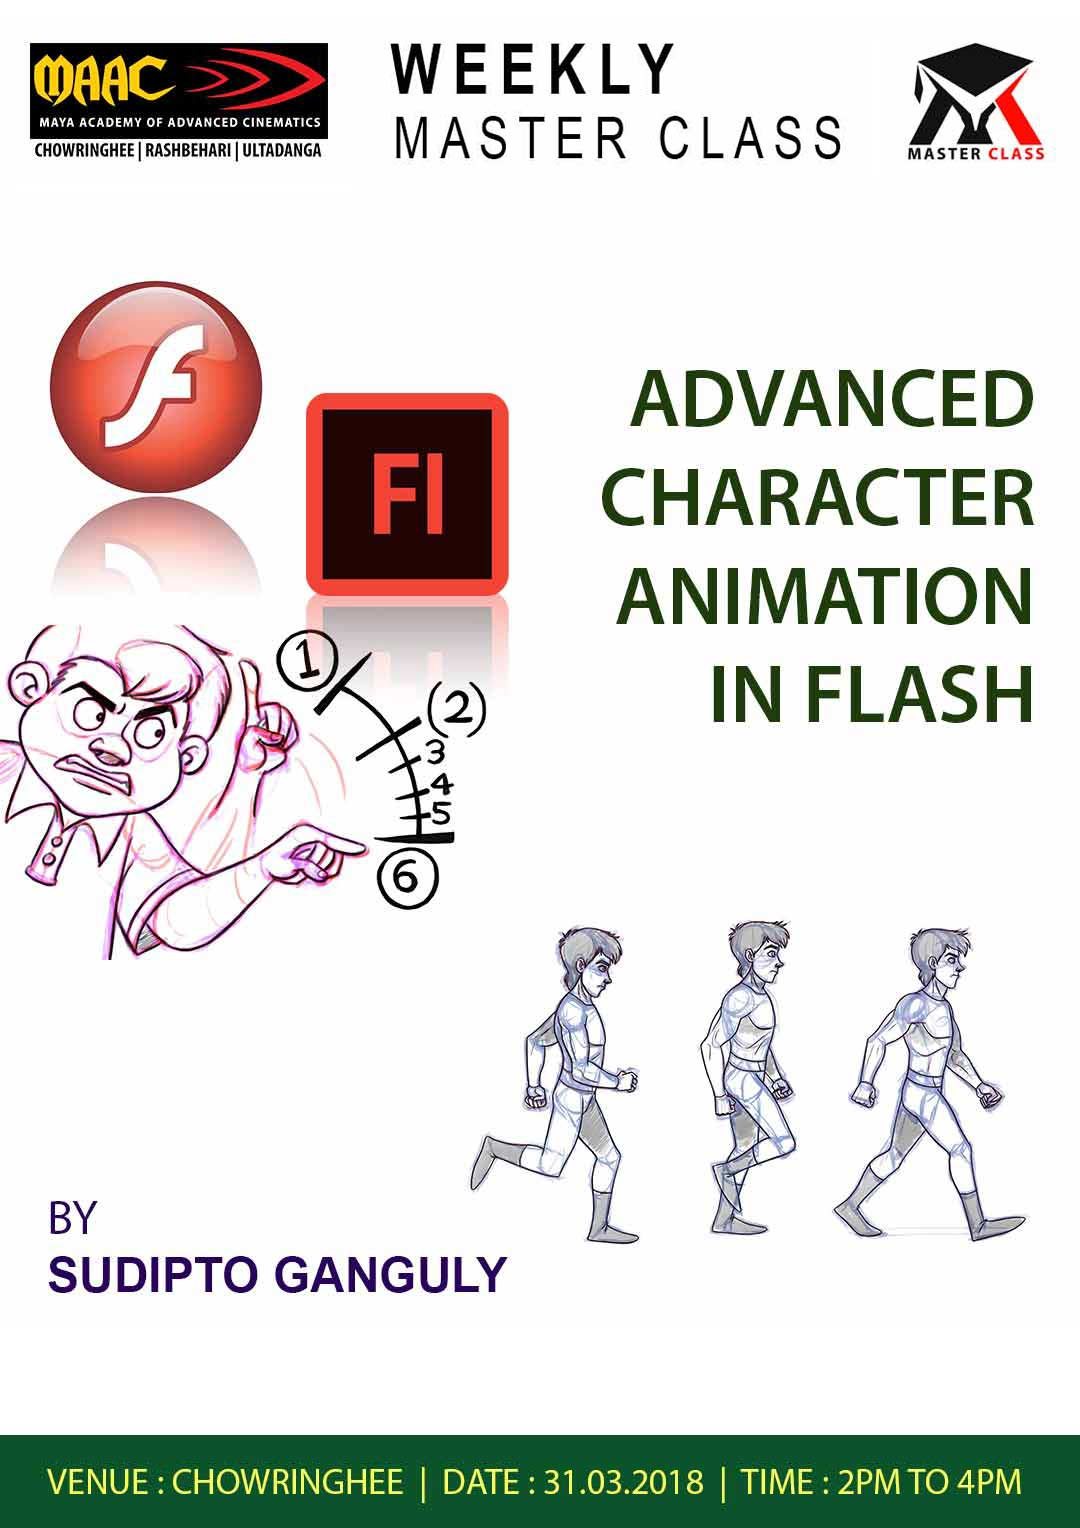 Weekly Master Class on Advanced Character animation in Flash